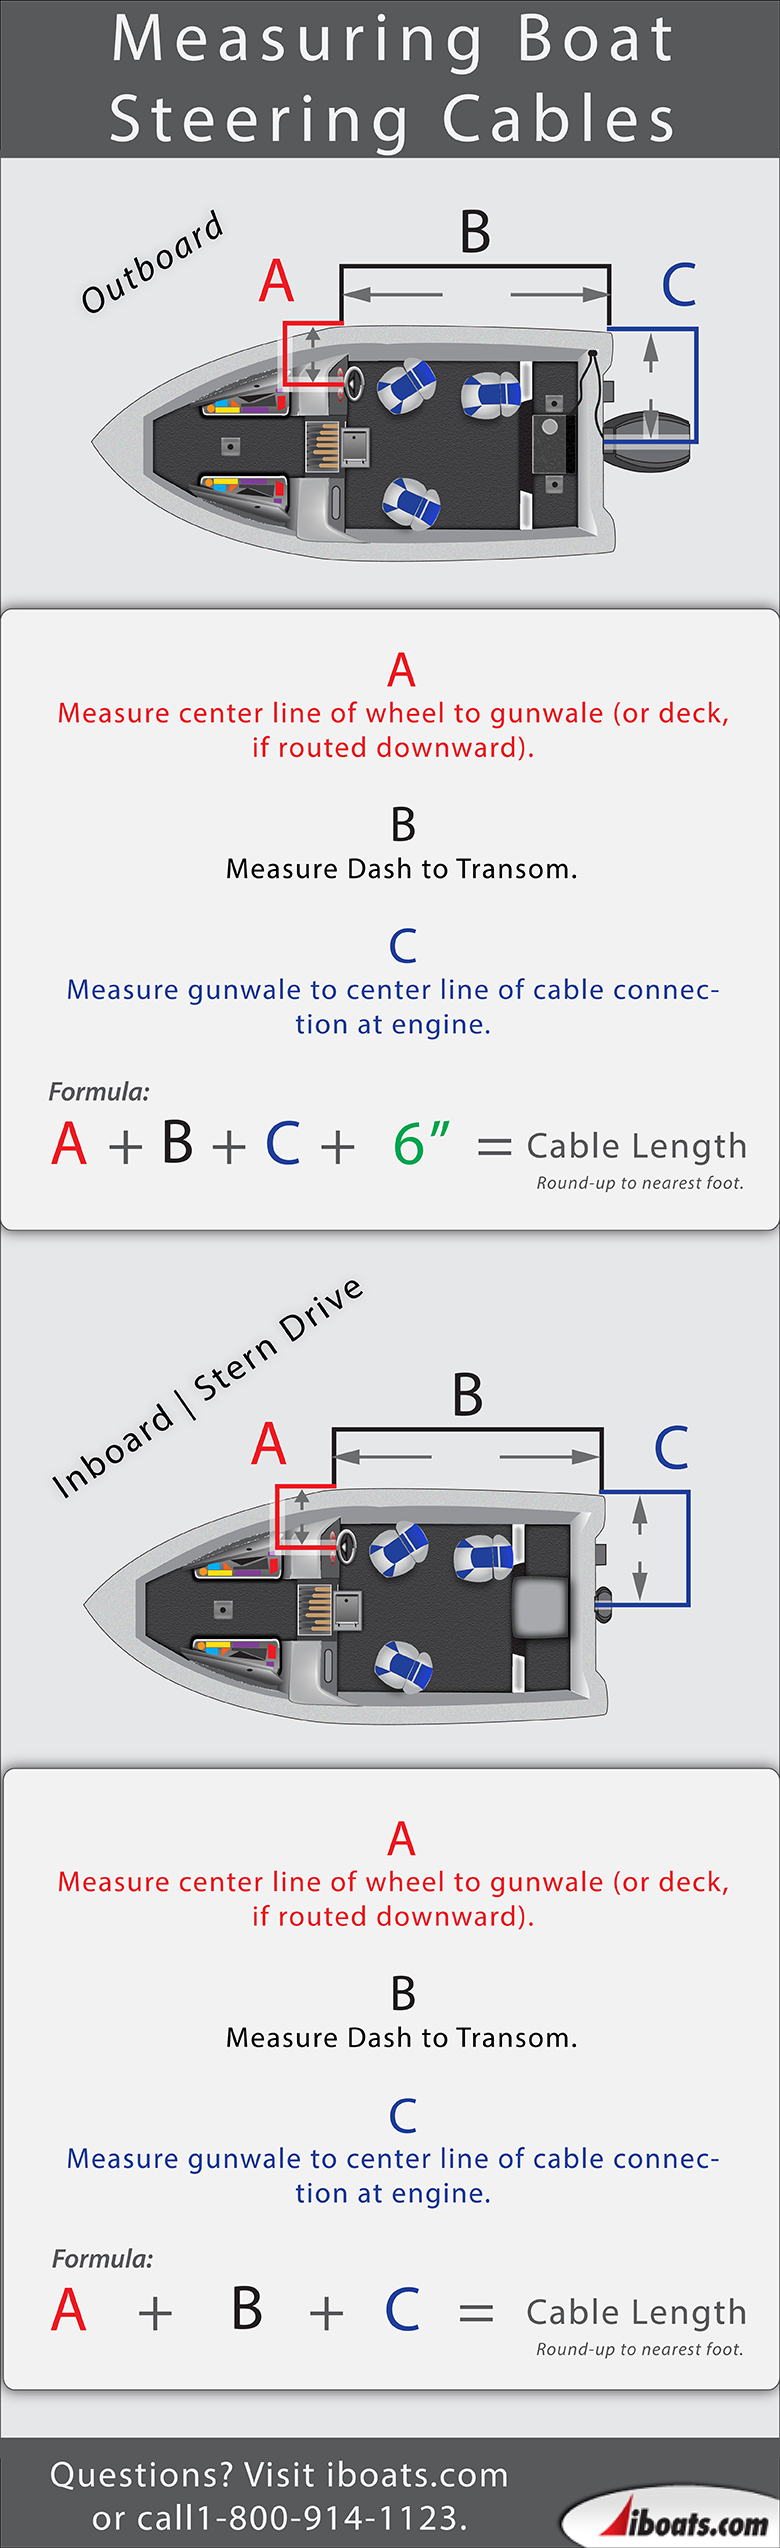 Infographic on Measuring Inboard/Outboard/Stern Drive Steering Cables